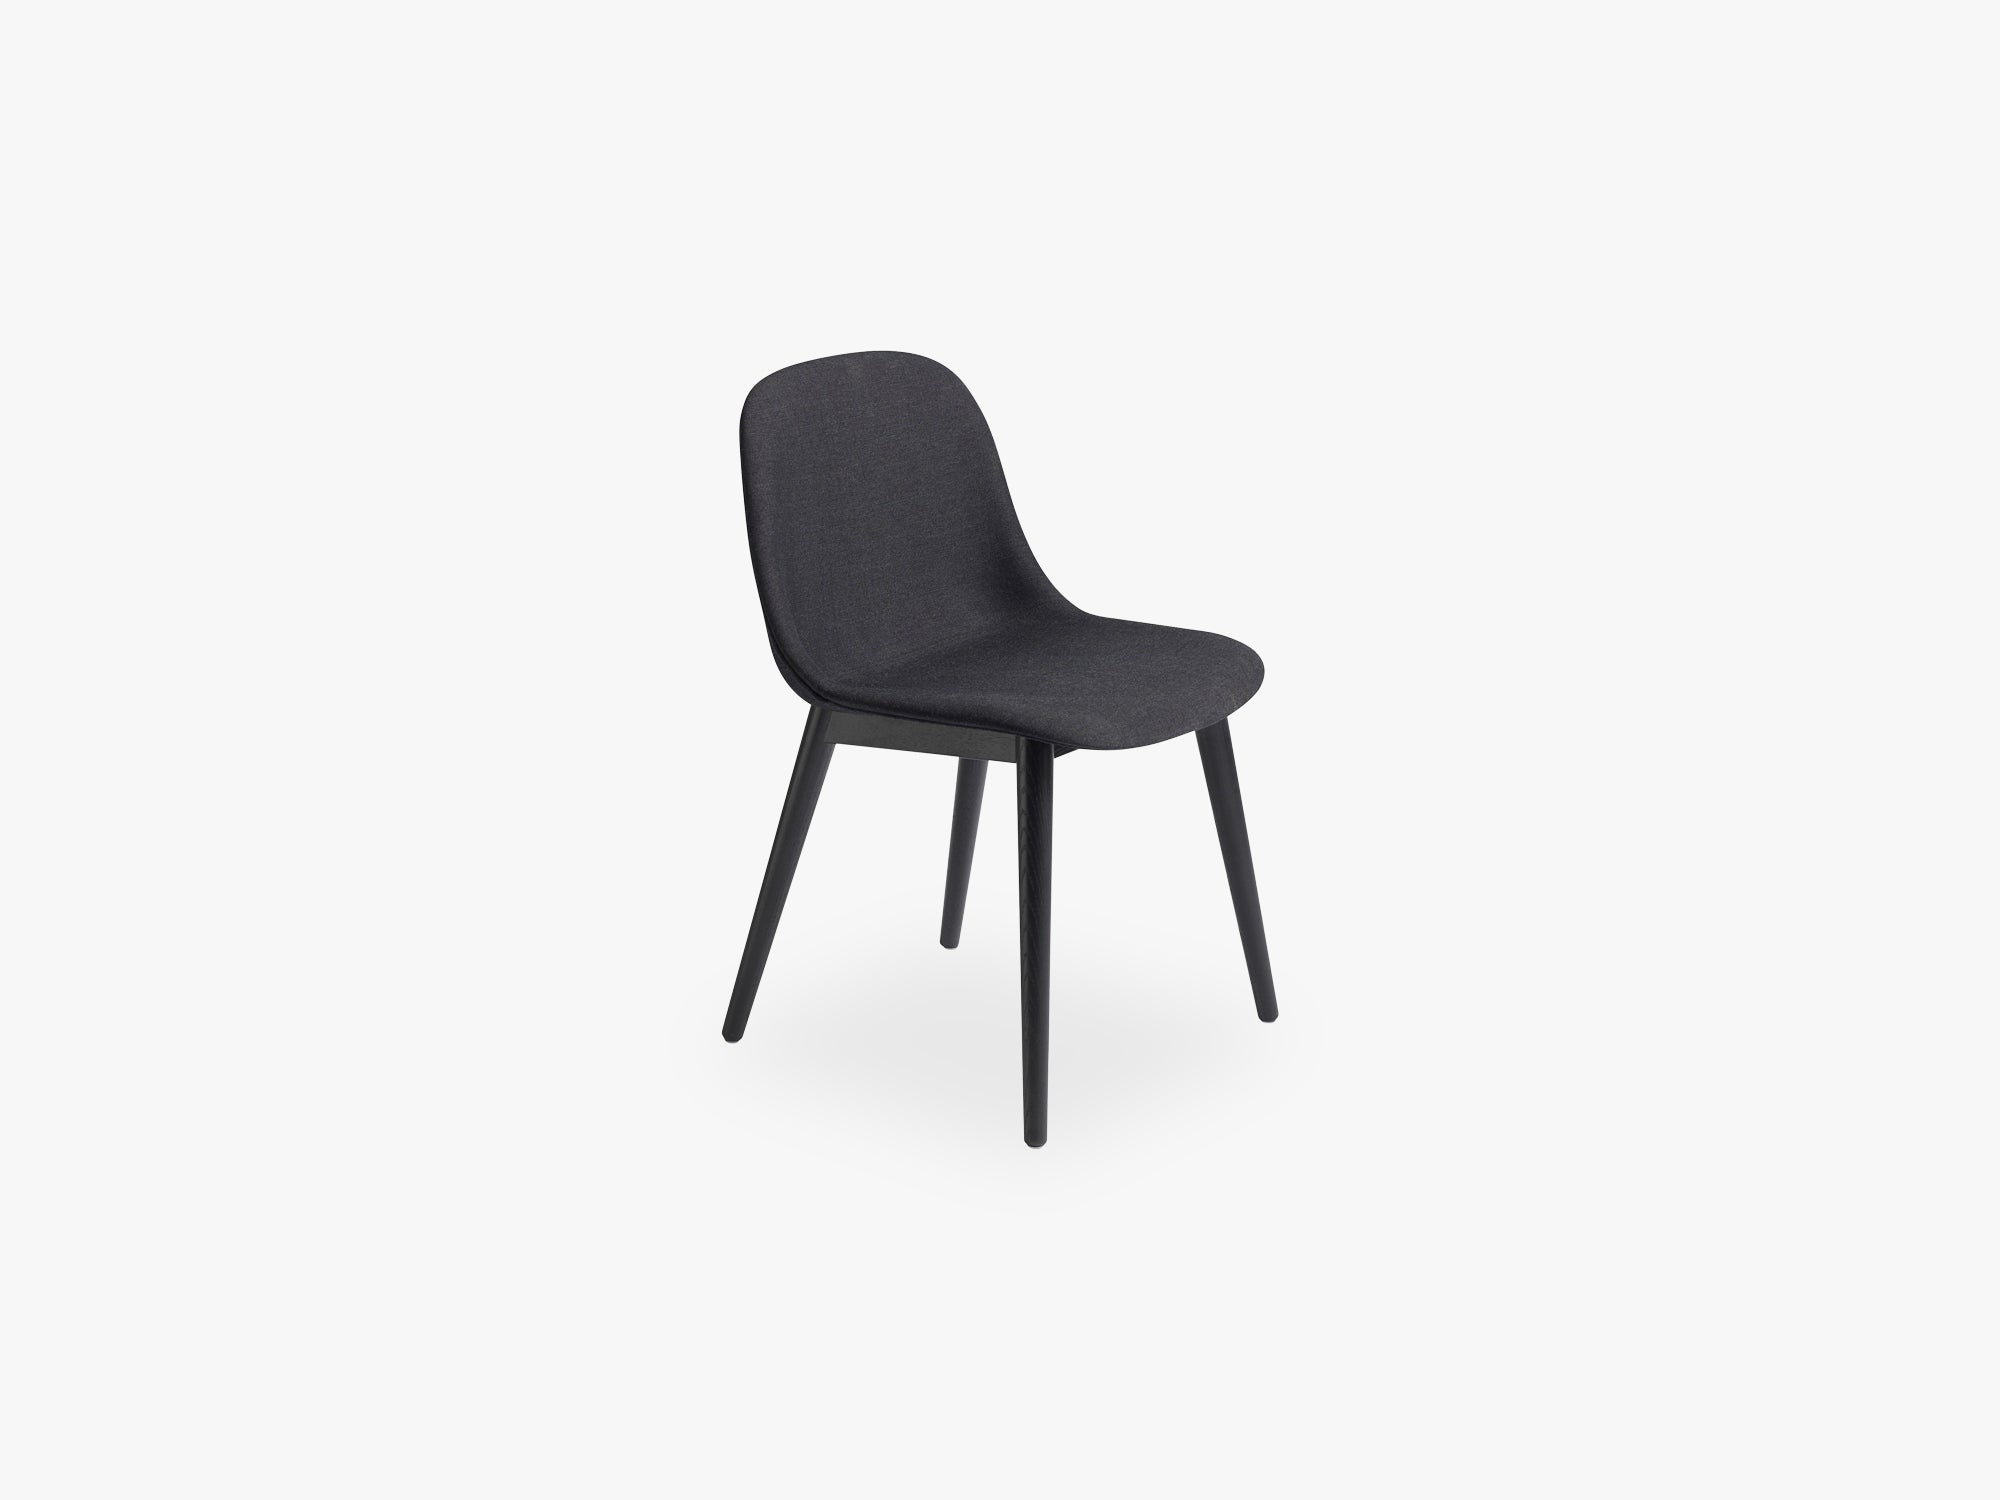 Fiber Side Chair - Wood Base - Textile Shell, Remix 183 / Black fra Muuto